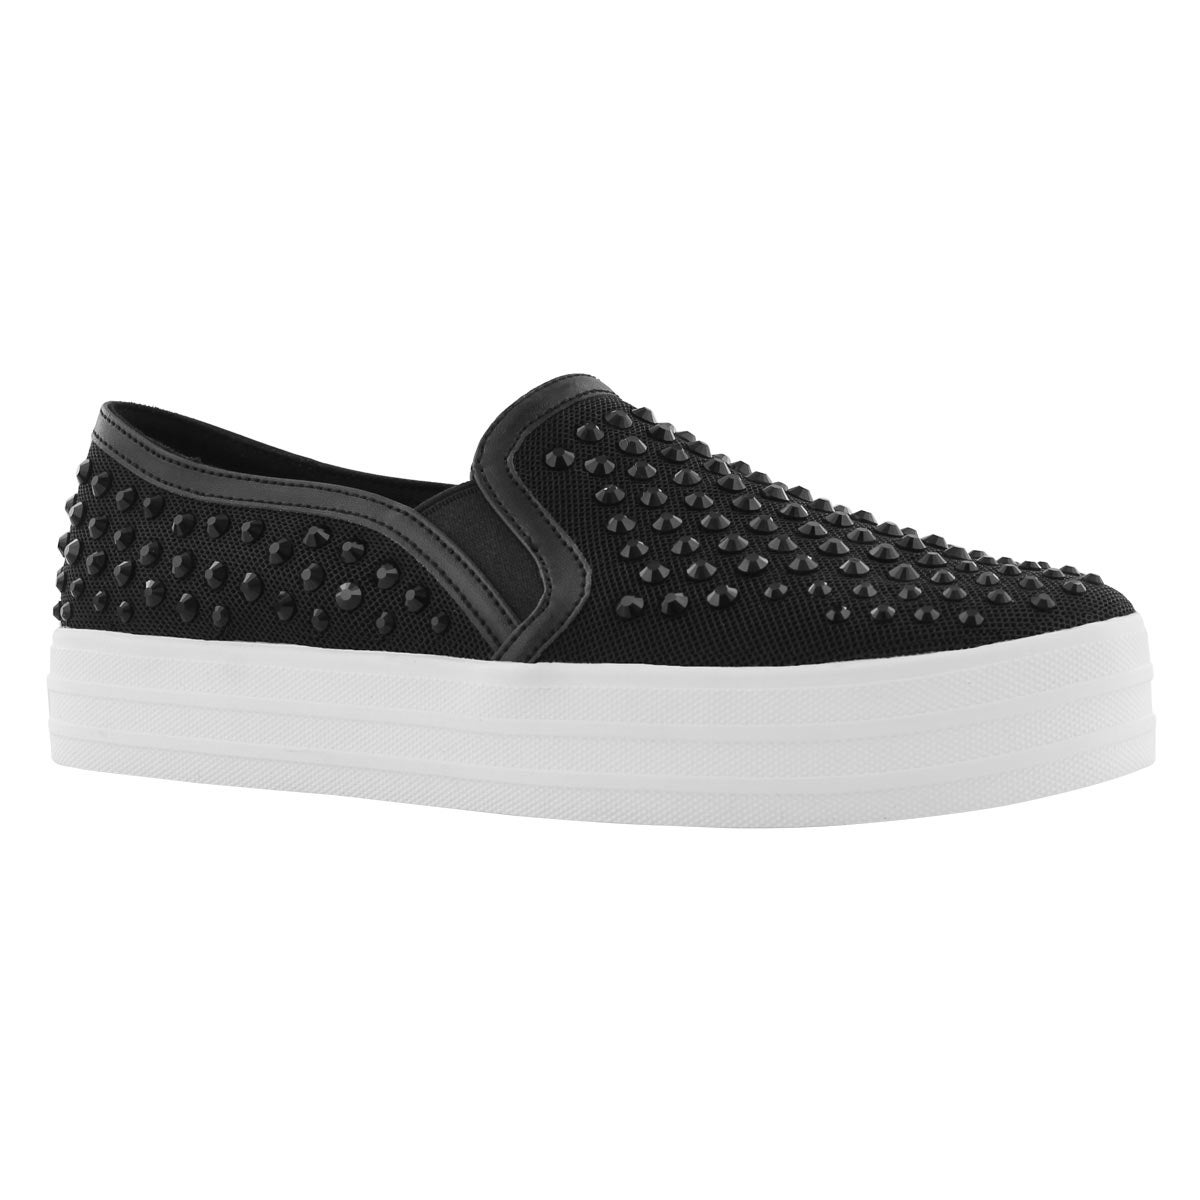 Lds Double Up Rhine-Steps blk slip on